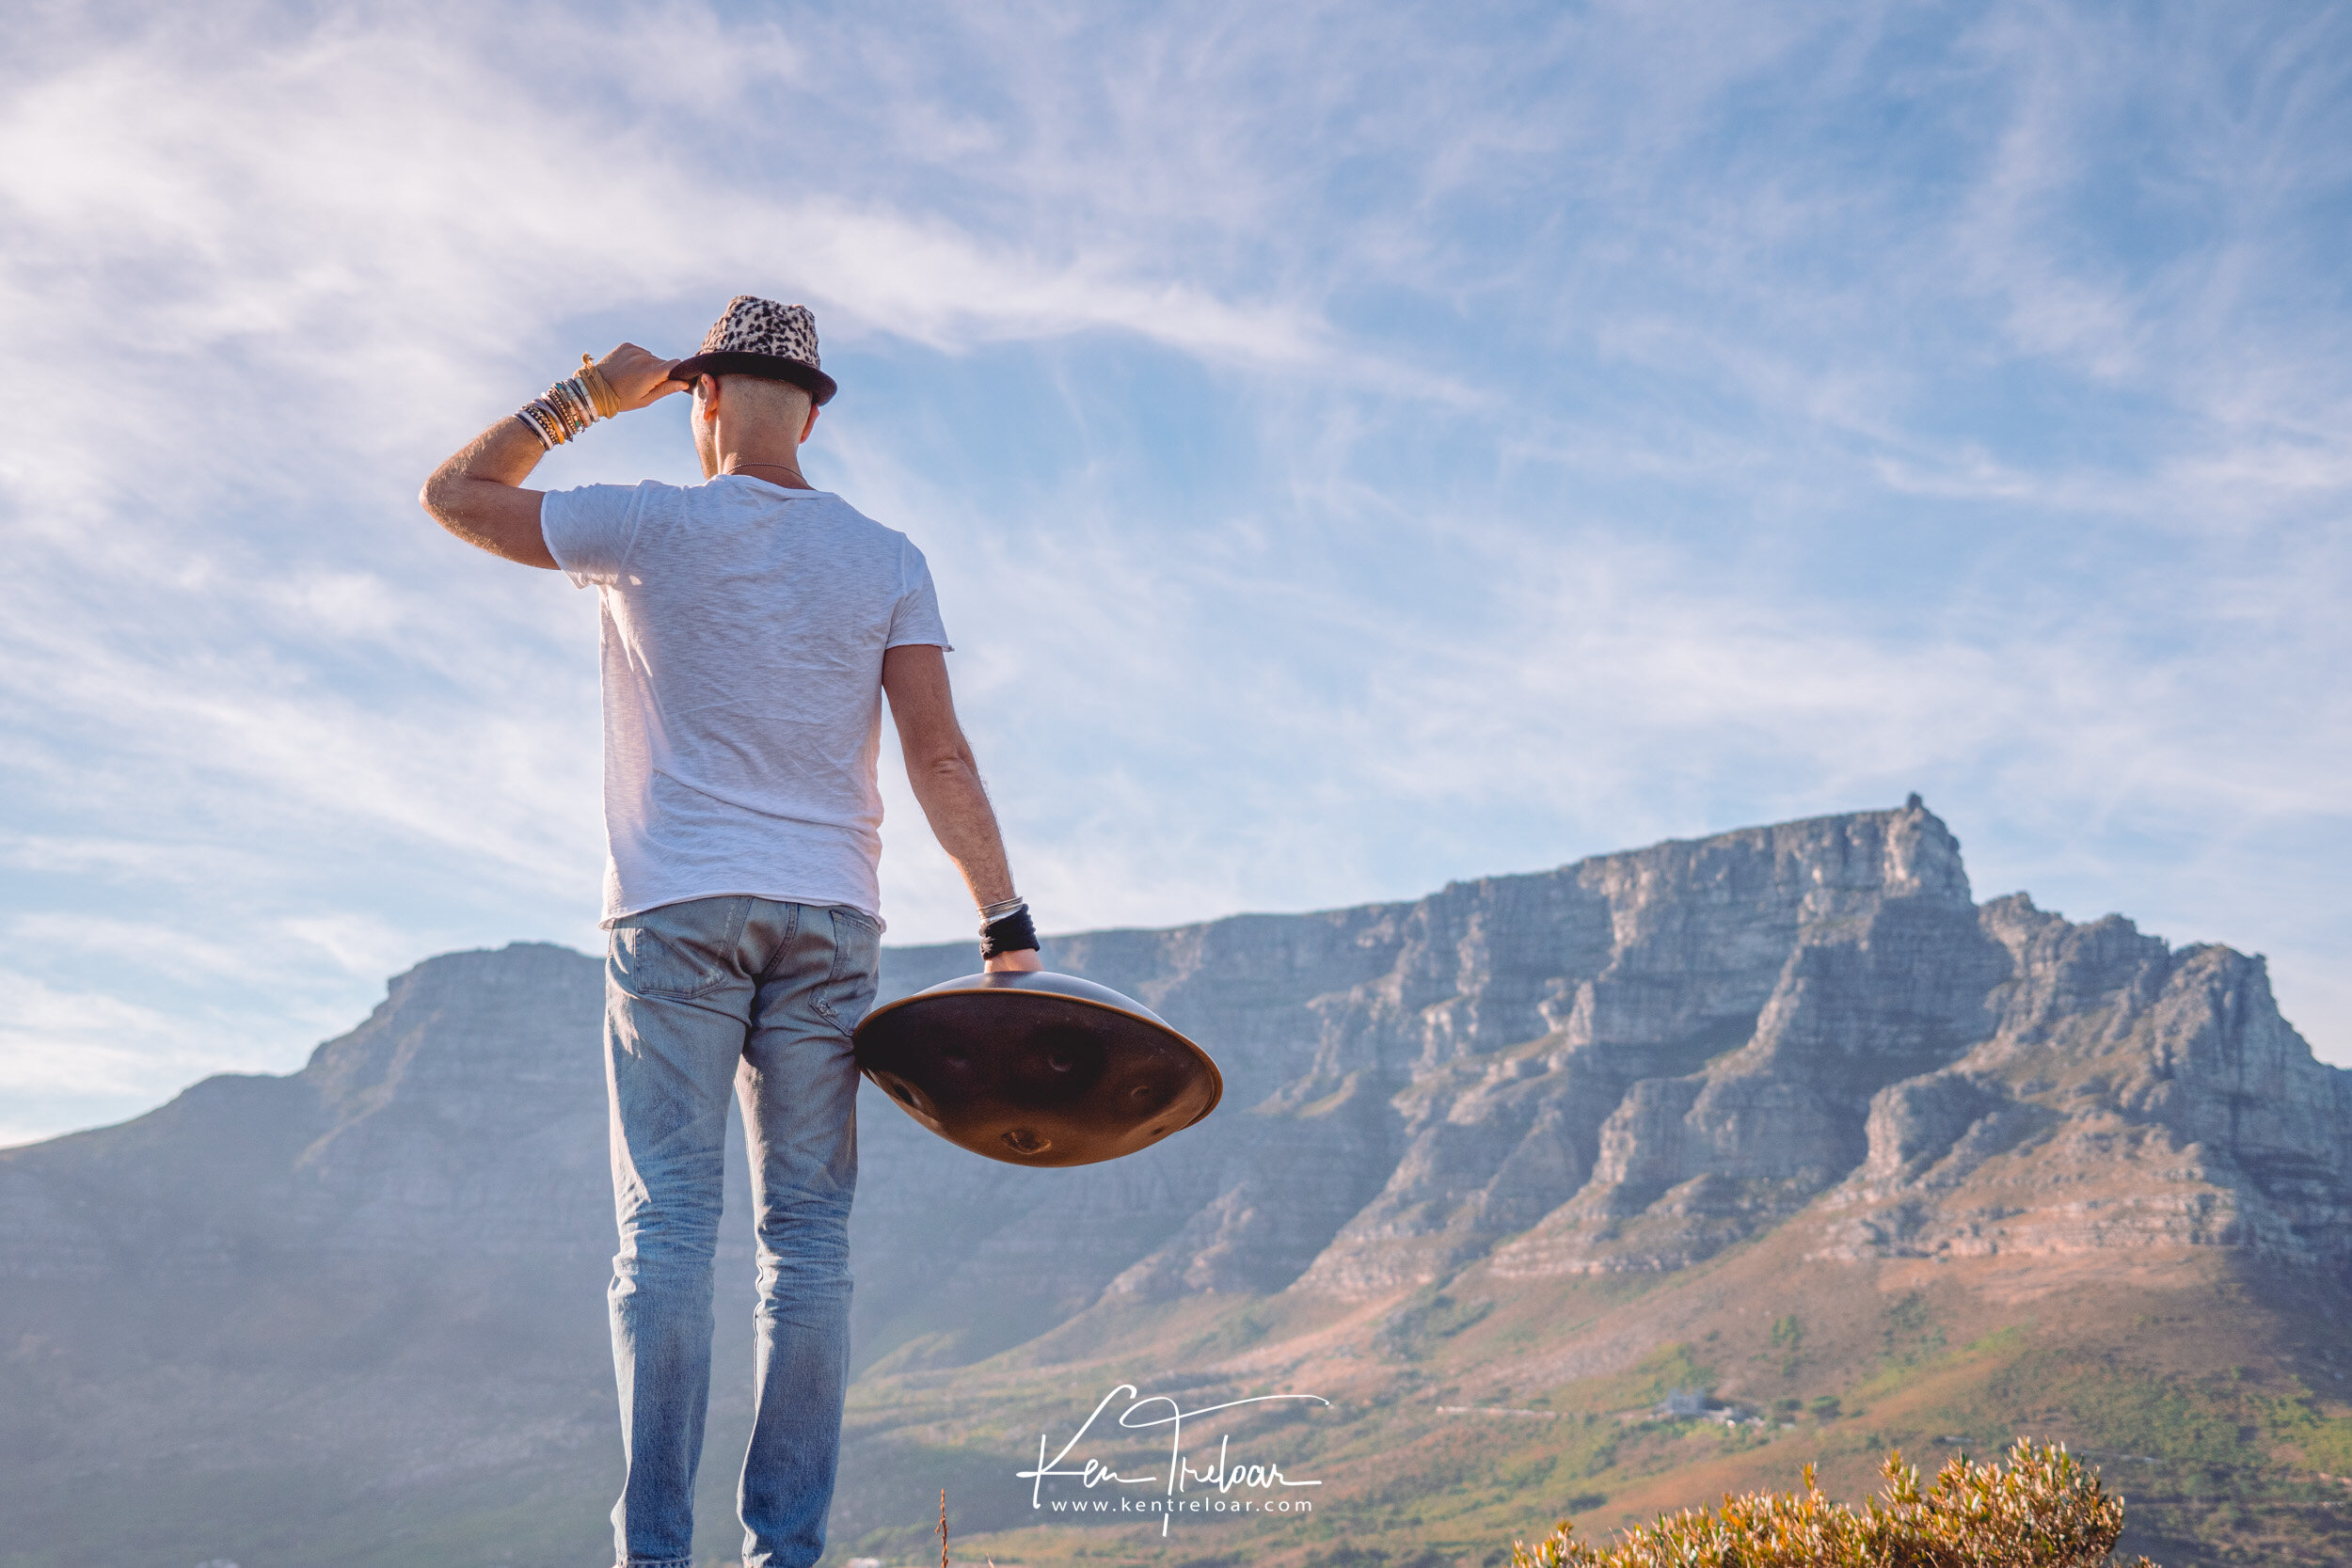 Marco Selvaggio - Signal Hill, Lions head, Table Mountain, Cape Town South Africa - Image by Ken Treloar Photography 2019-8.jpg